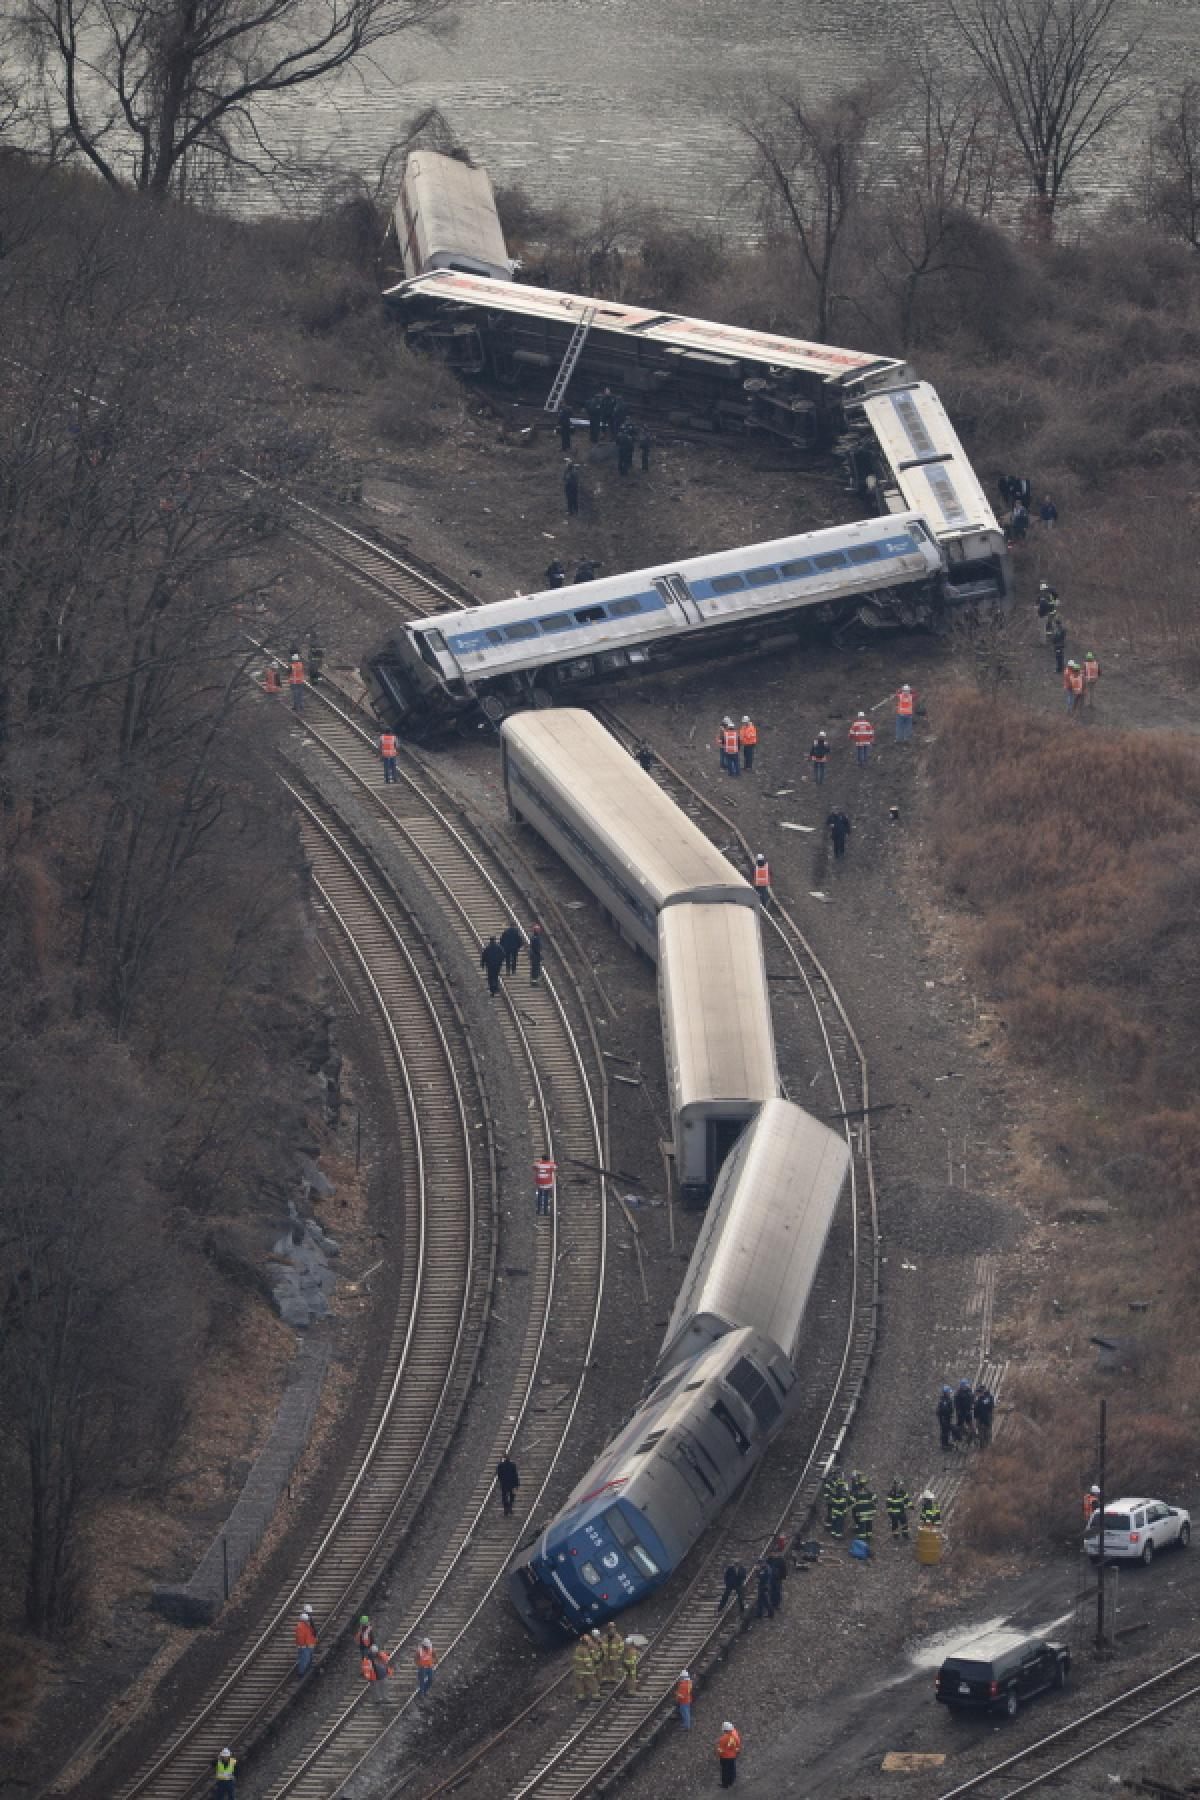 metro-north-train-derails-new-york-4-fgdgsfad-63-injured (1)